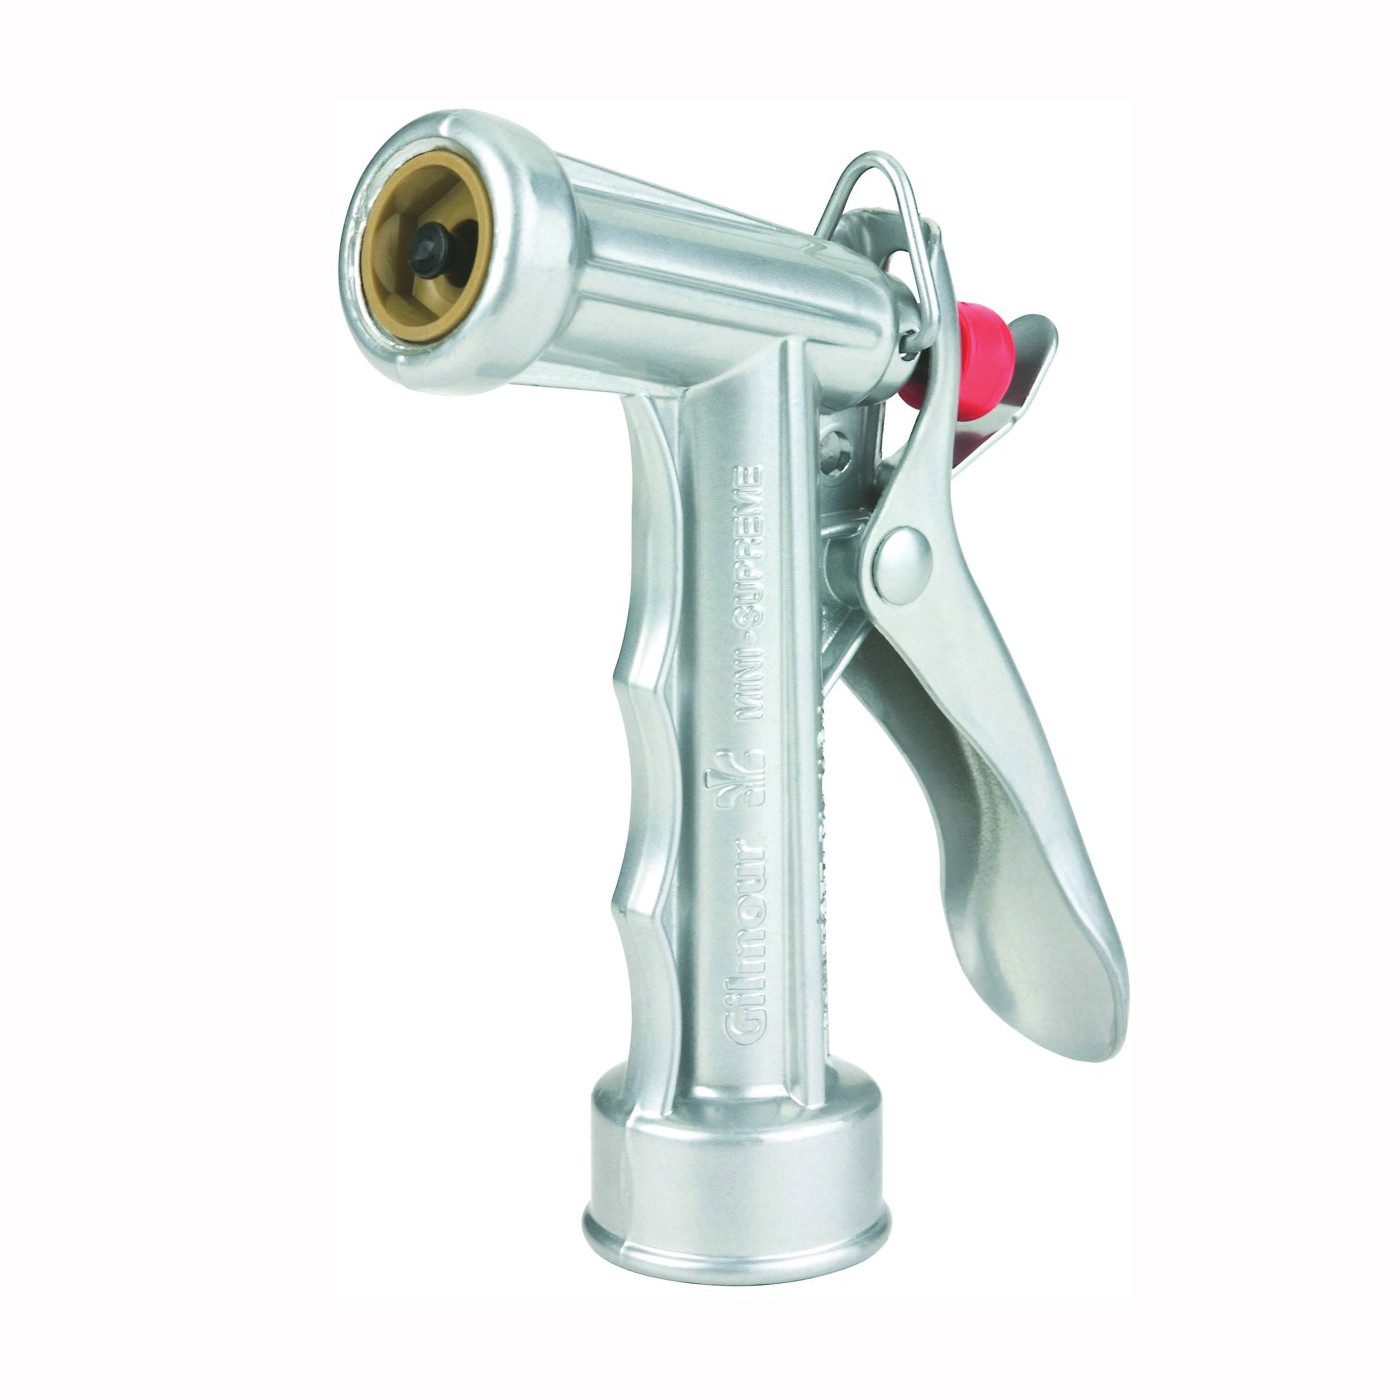 Picture of Gilmour 805642-1001 Spray Nozzle, Zinc